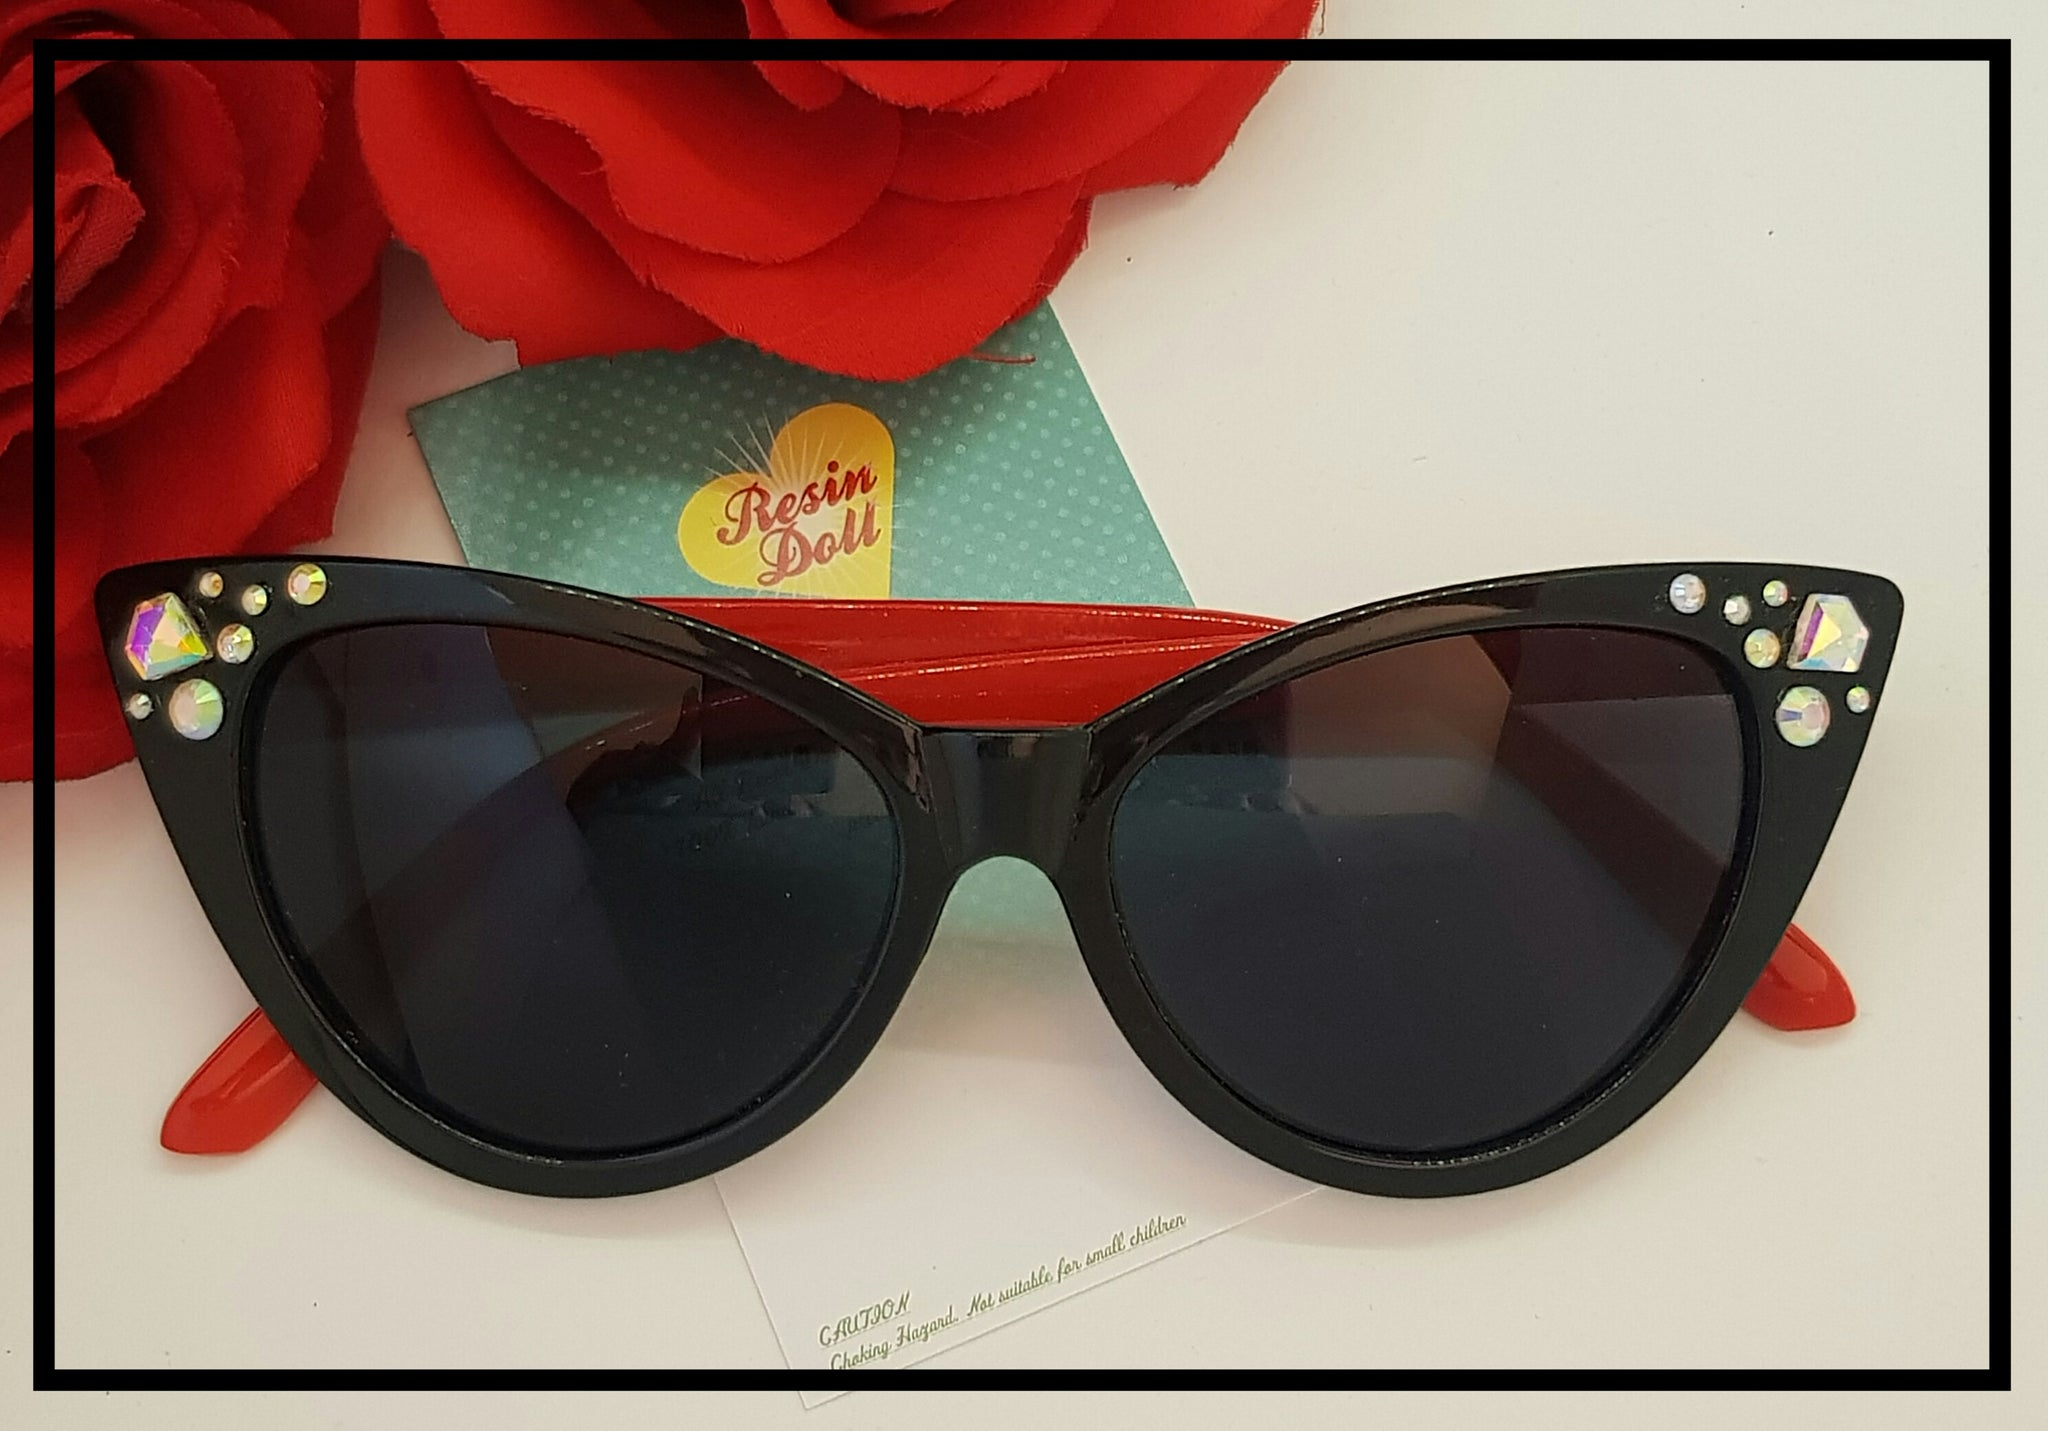 Black frame red arms sunglasses diamonds